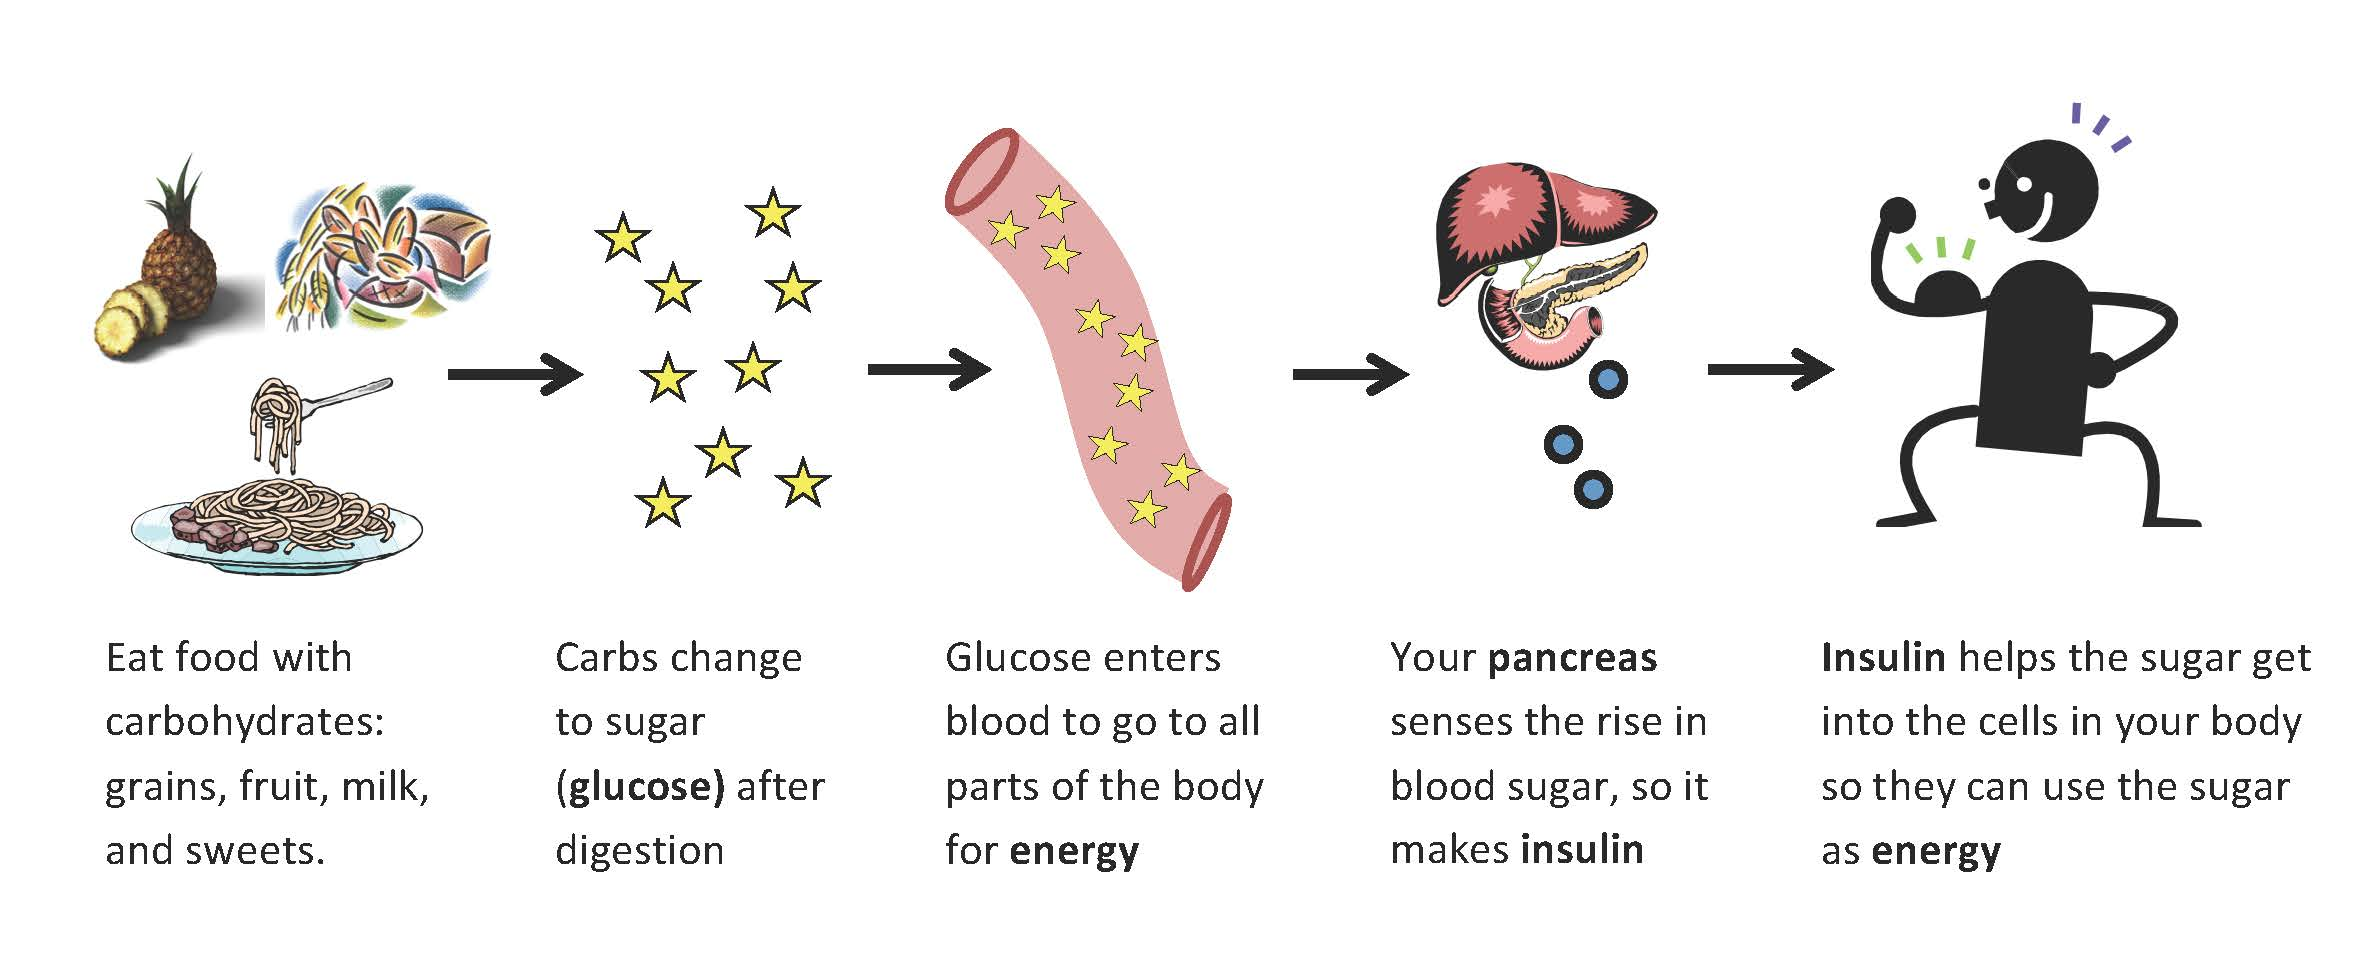 Insulin and sugar overview